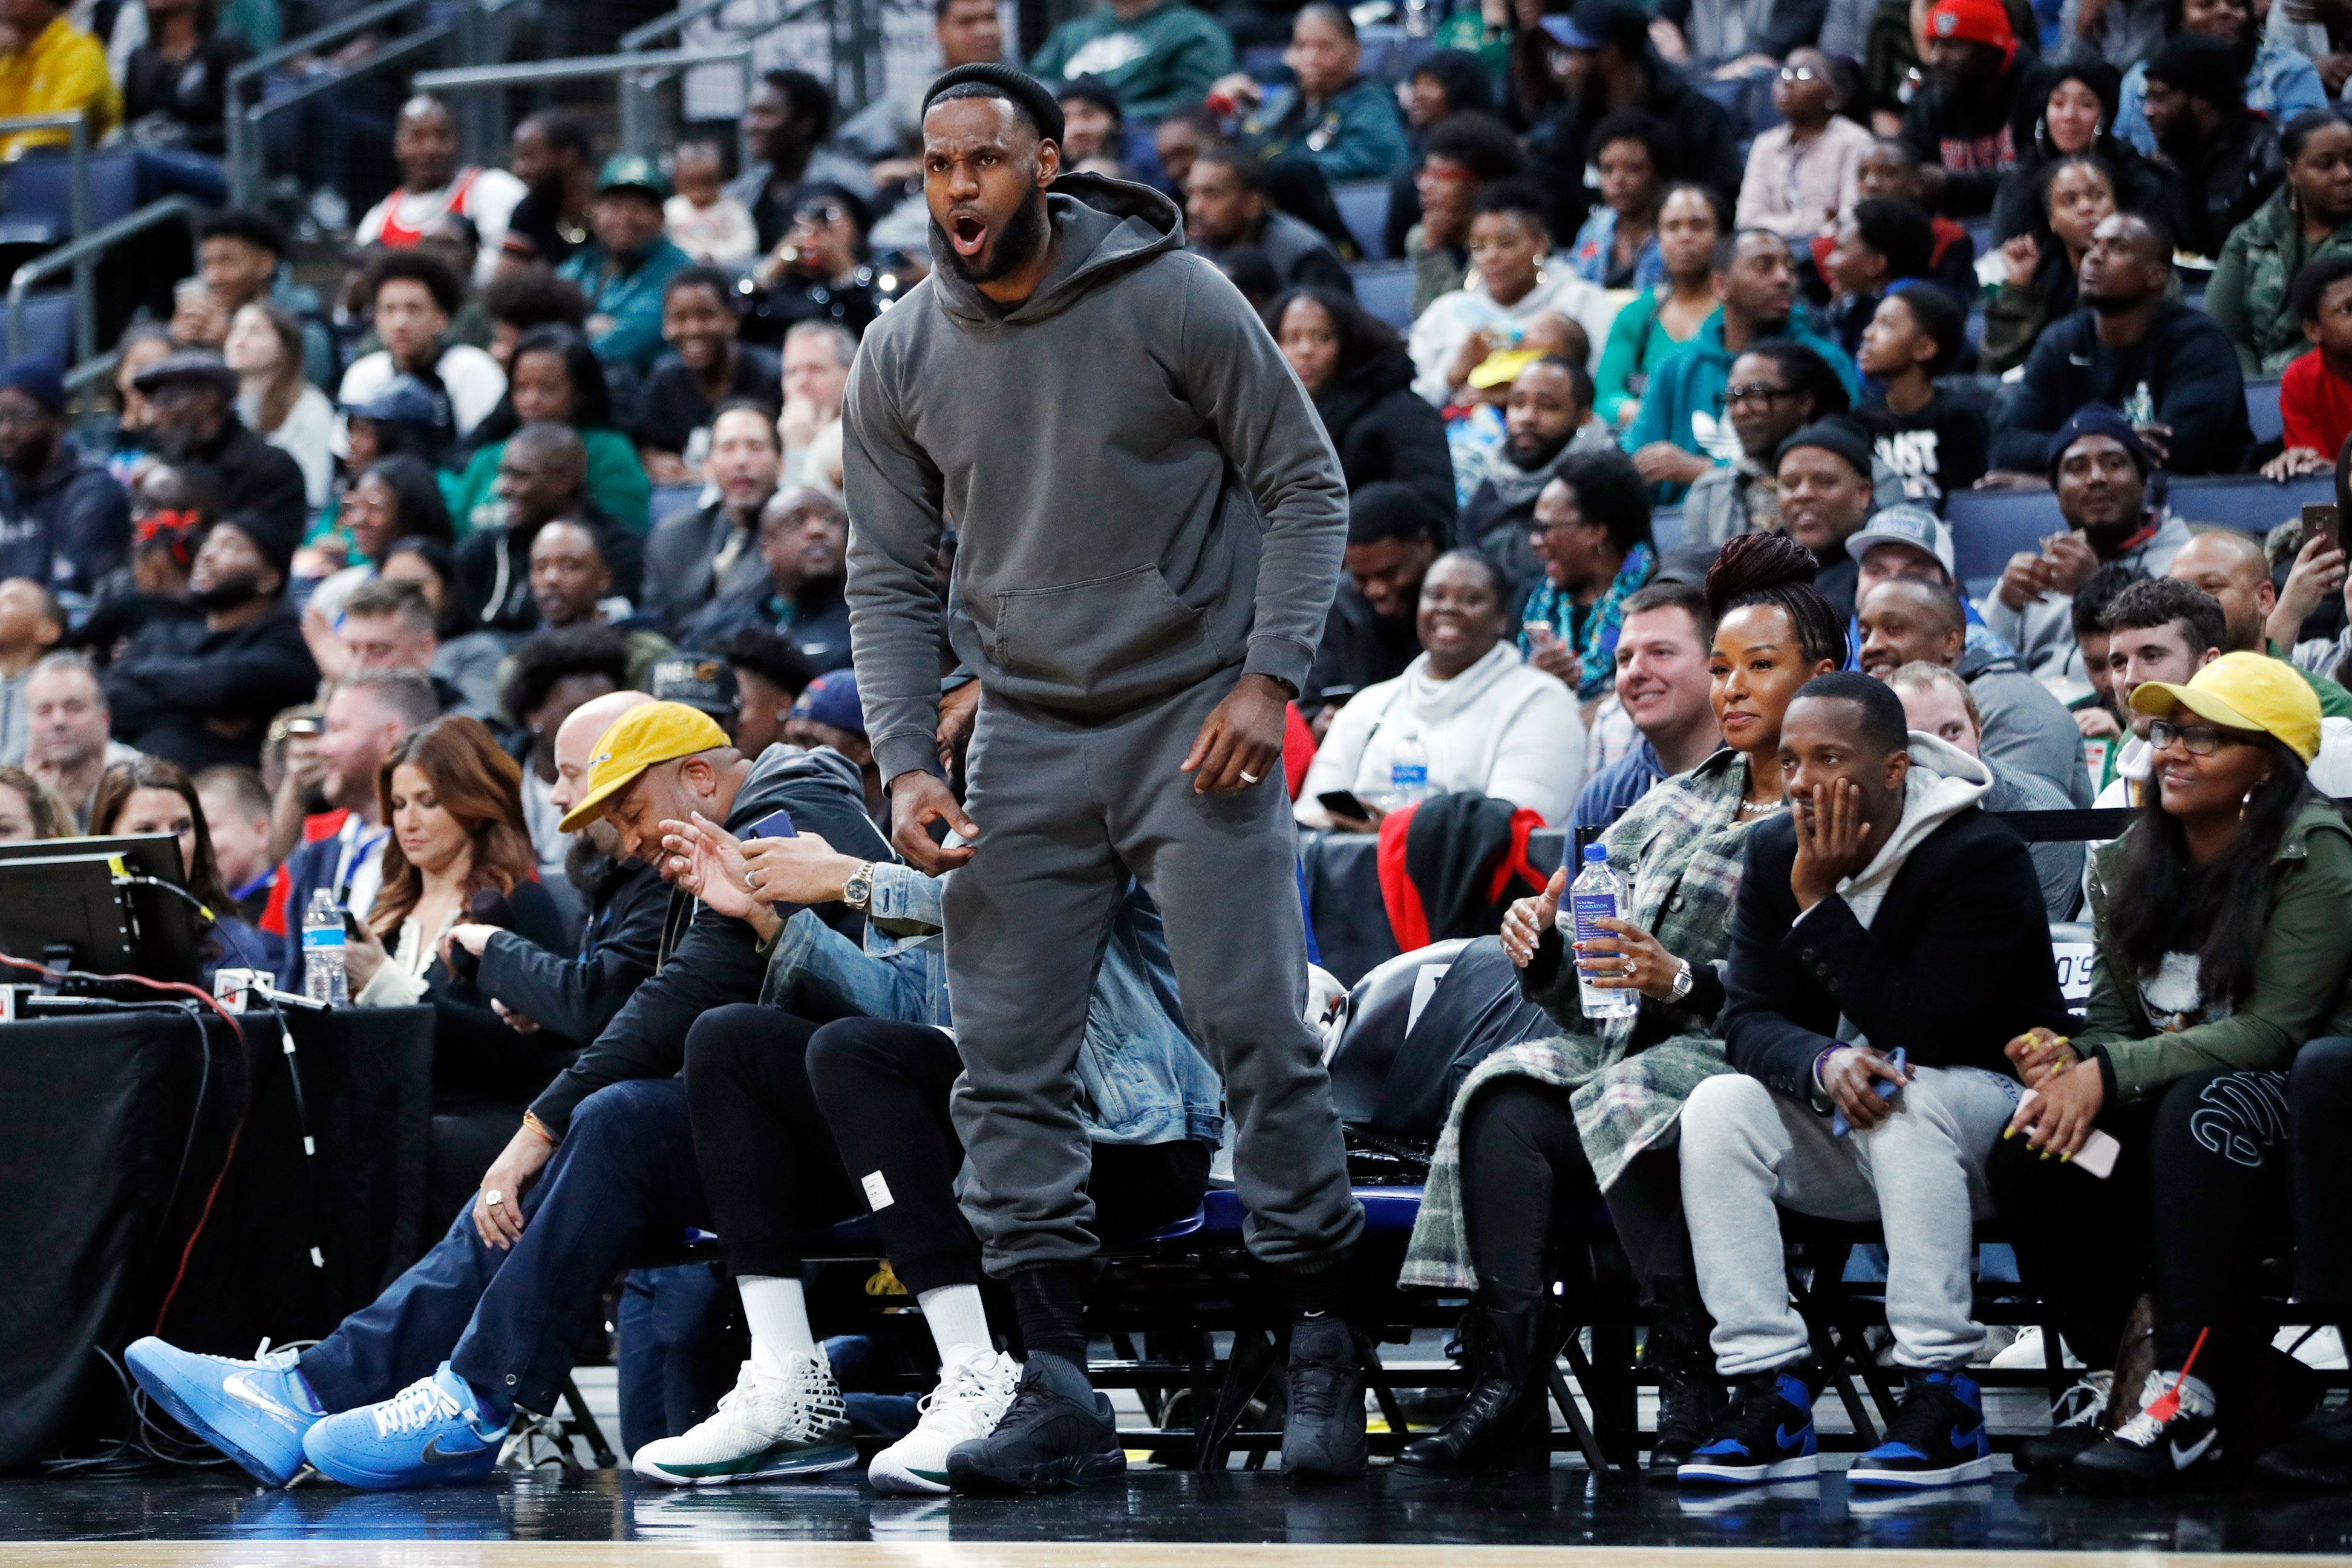 Here's Your (Very Limited-Edition) Shot at Channeling LeBron's Sweatsuit Style